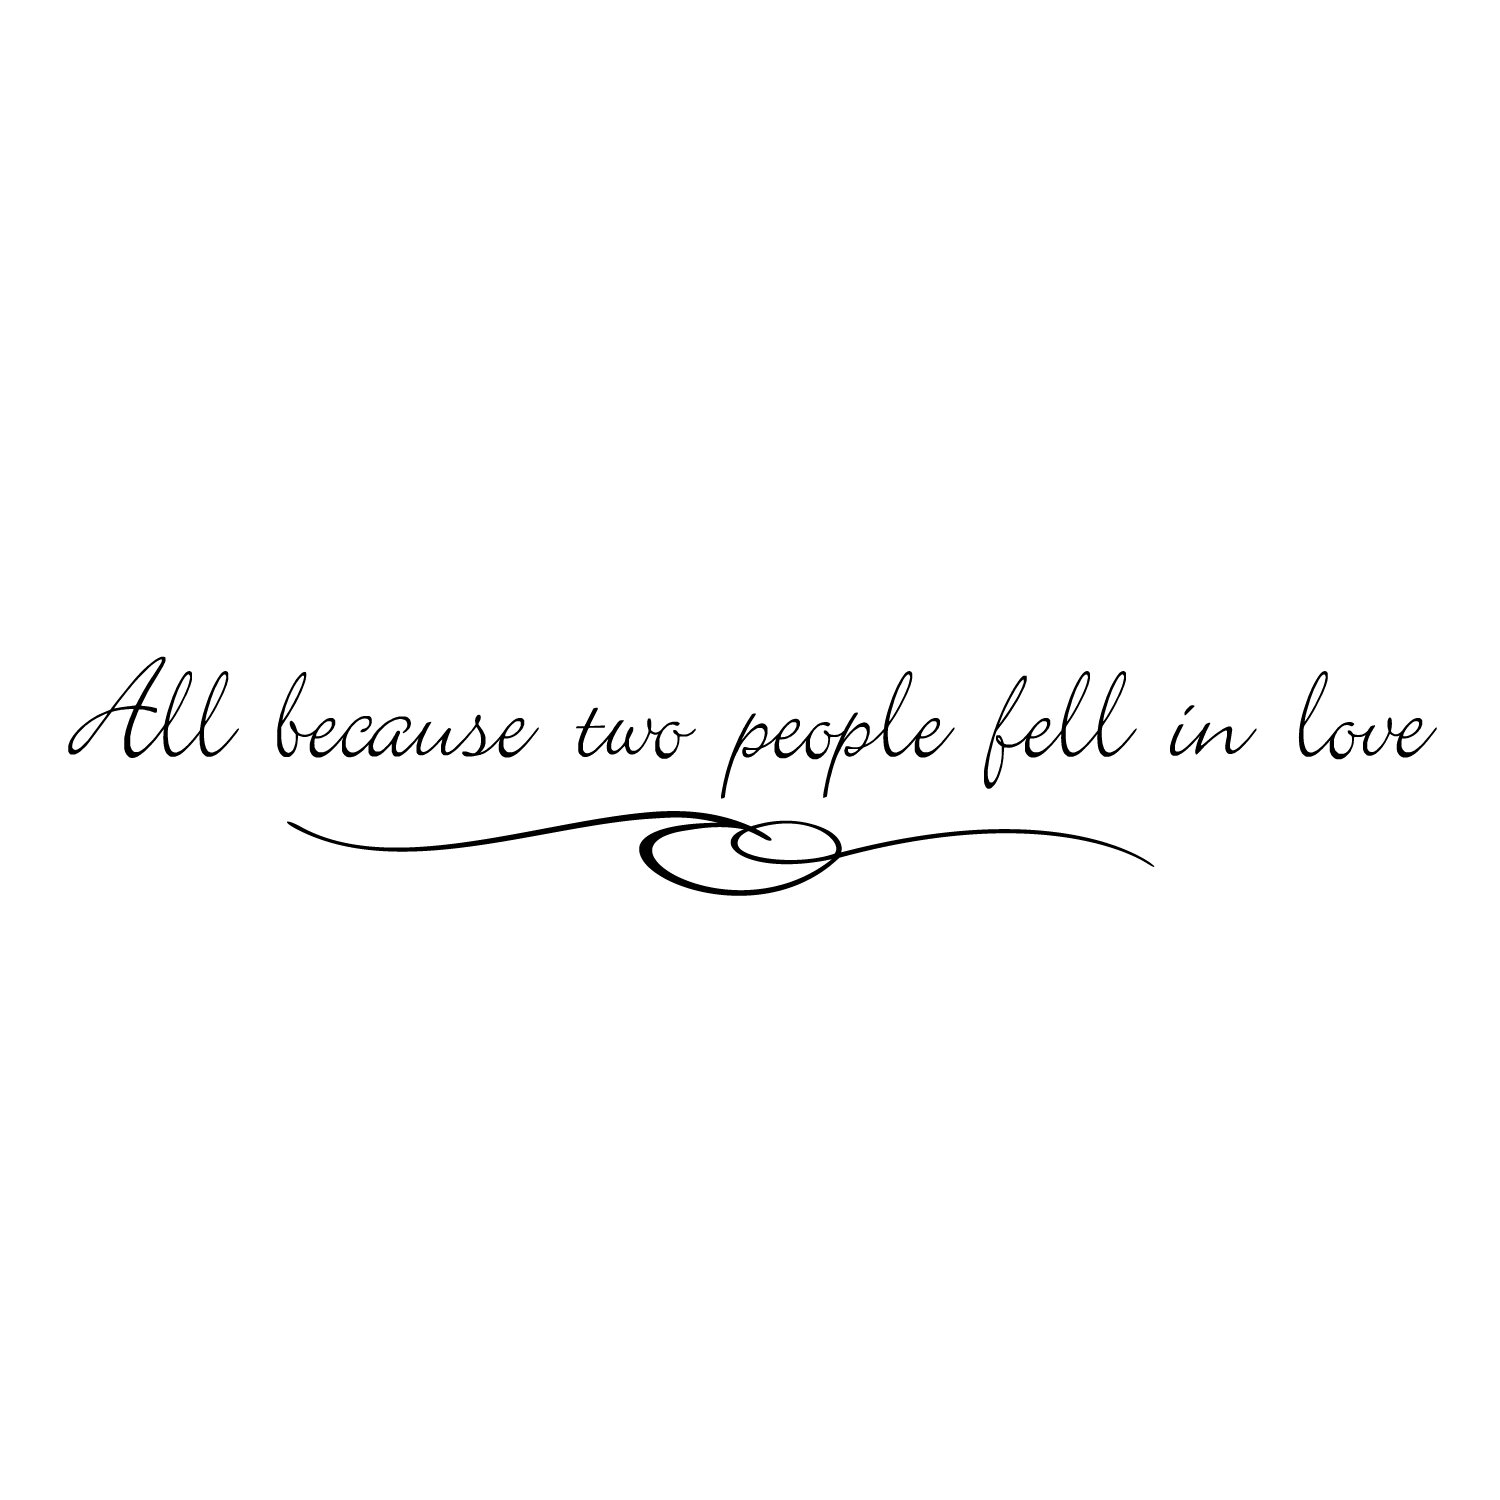 All because two people fell in love picture